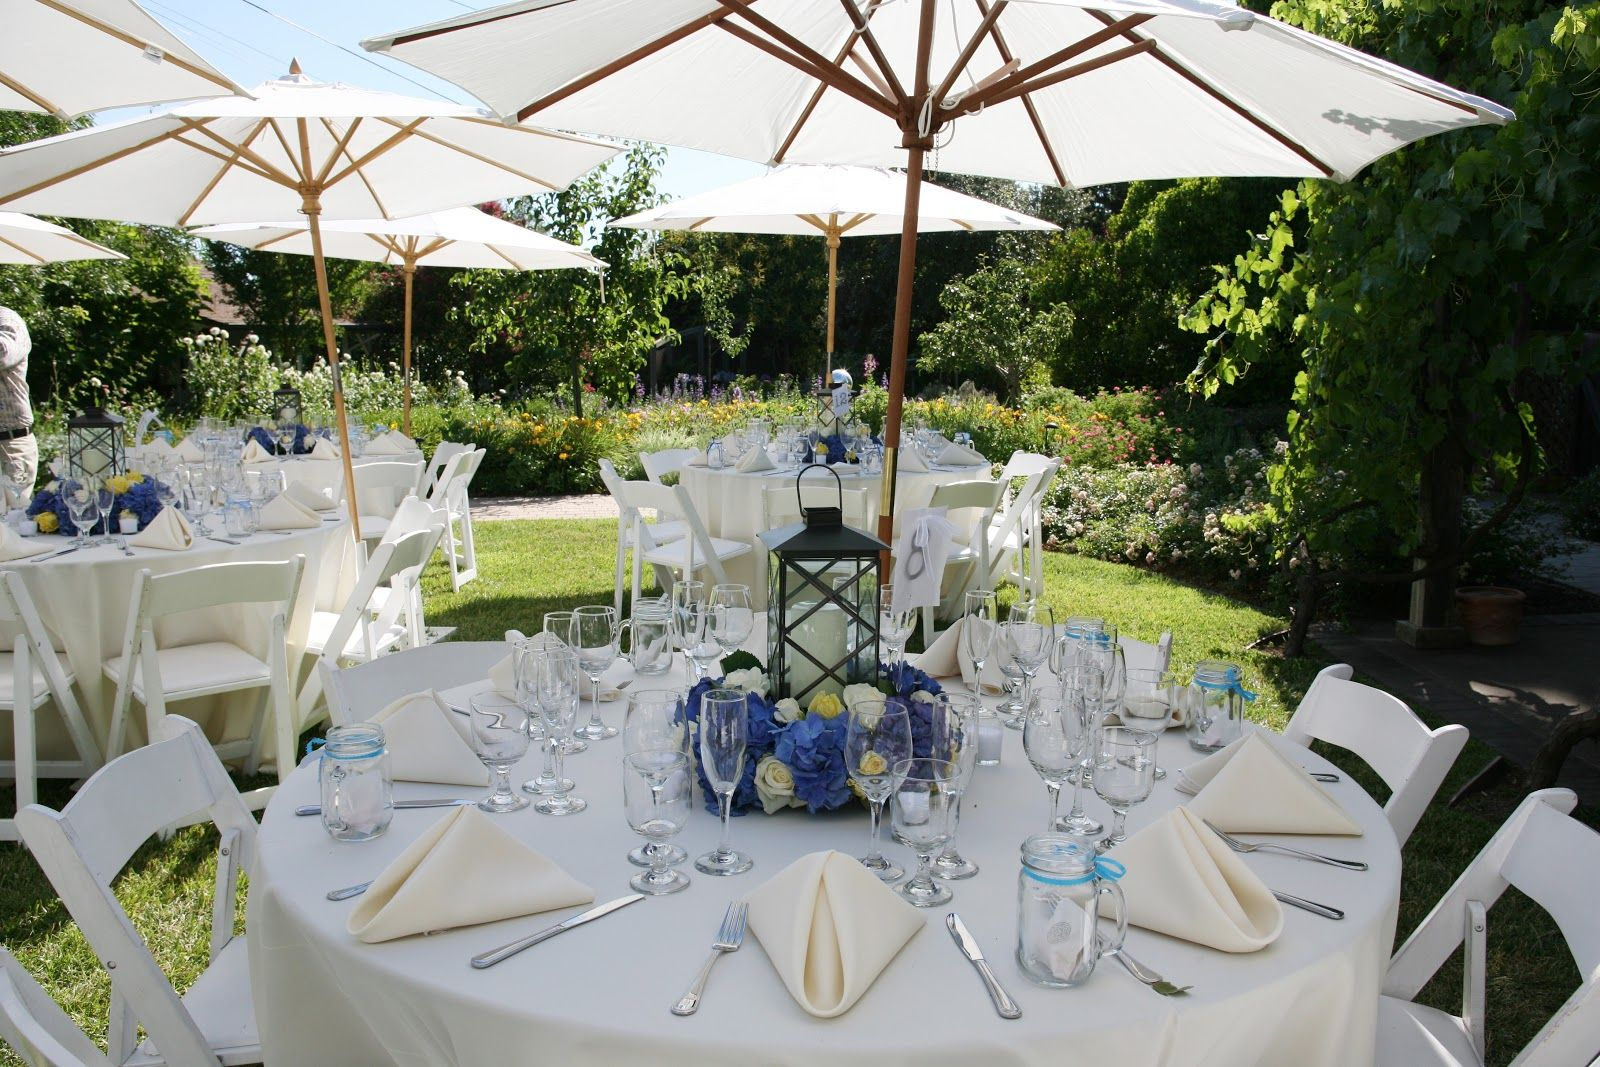 Reception Tables With White Patio Umbrellas Scattered Between Them. A  Wonderful Garden Party Look  Plus They Keep The Tables Shaded From The Sun.